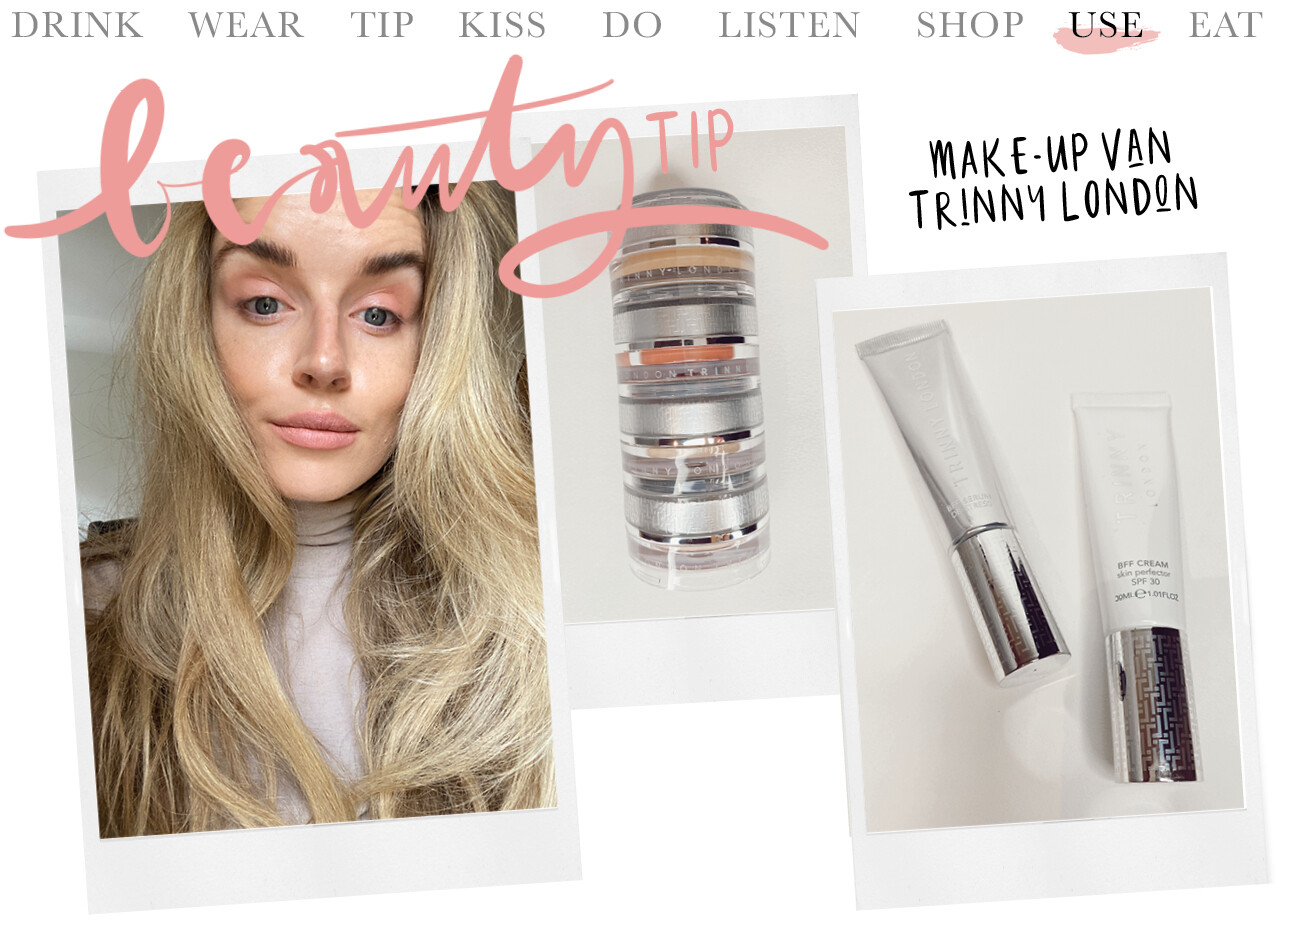 Trinny London makeup look Lotte van scherpenzeel